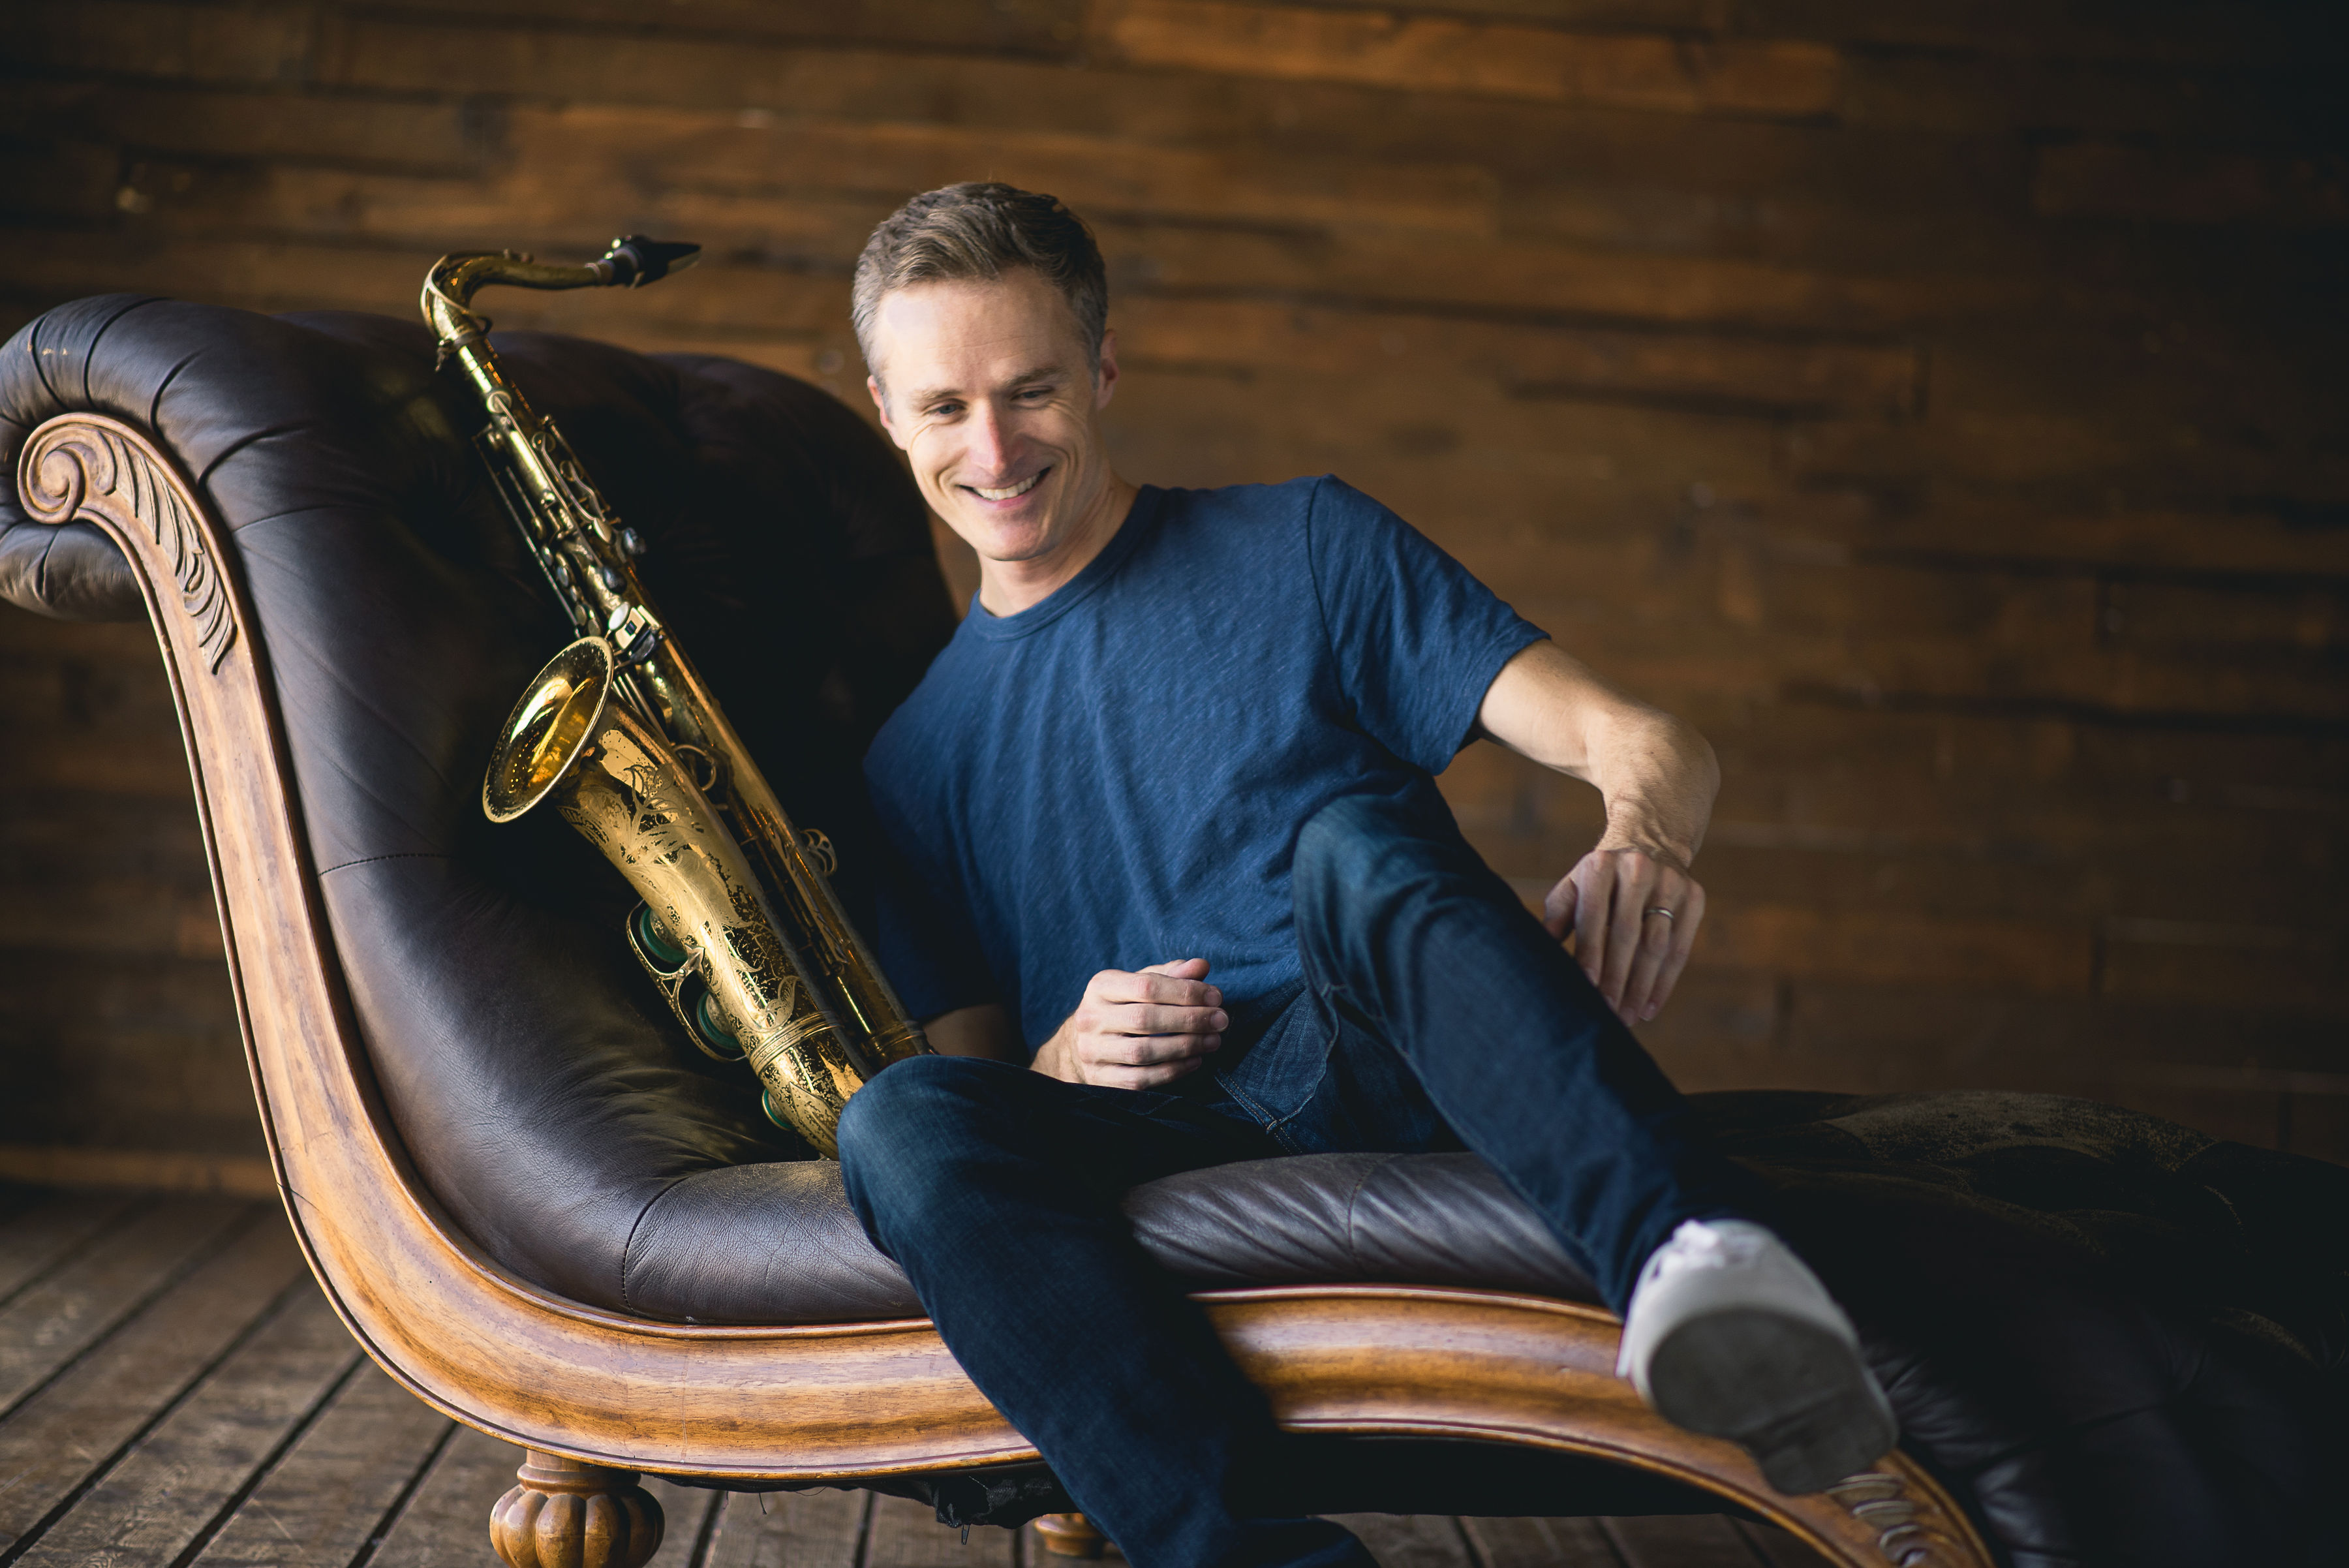 Saxophonist Bob Reynolds on a couch